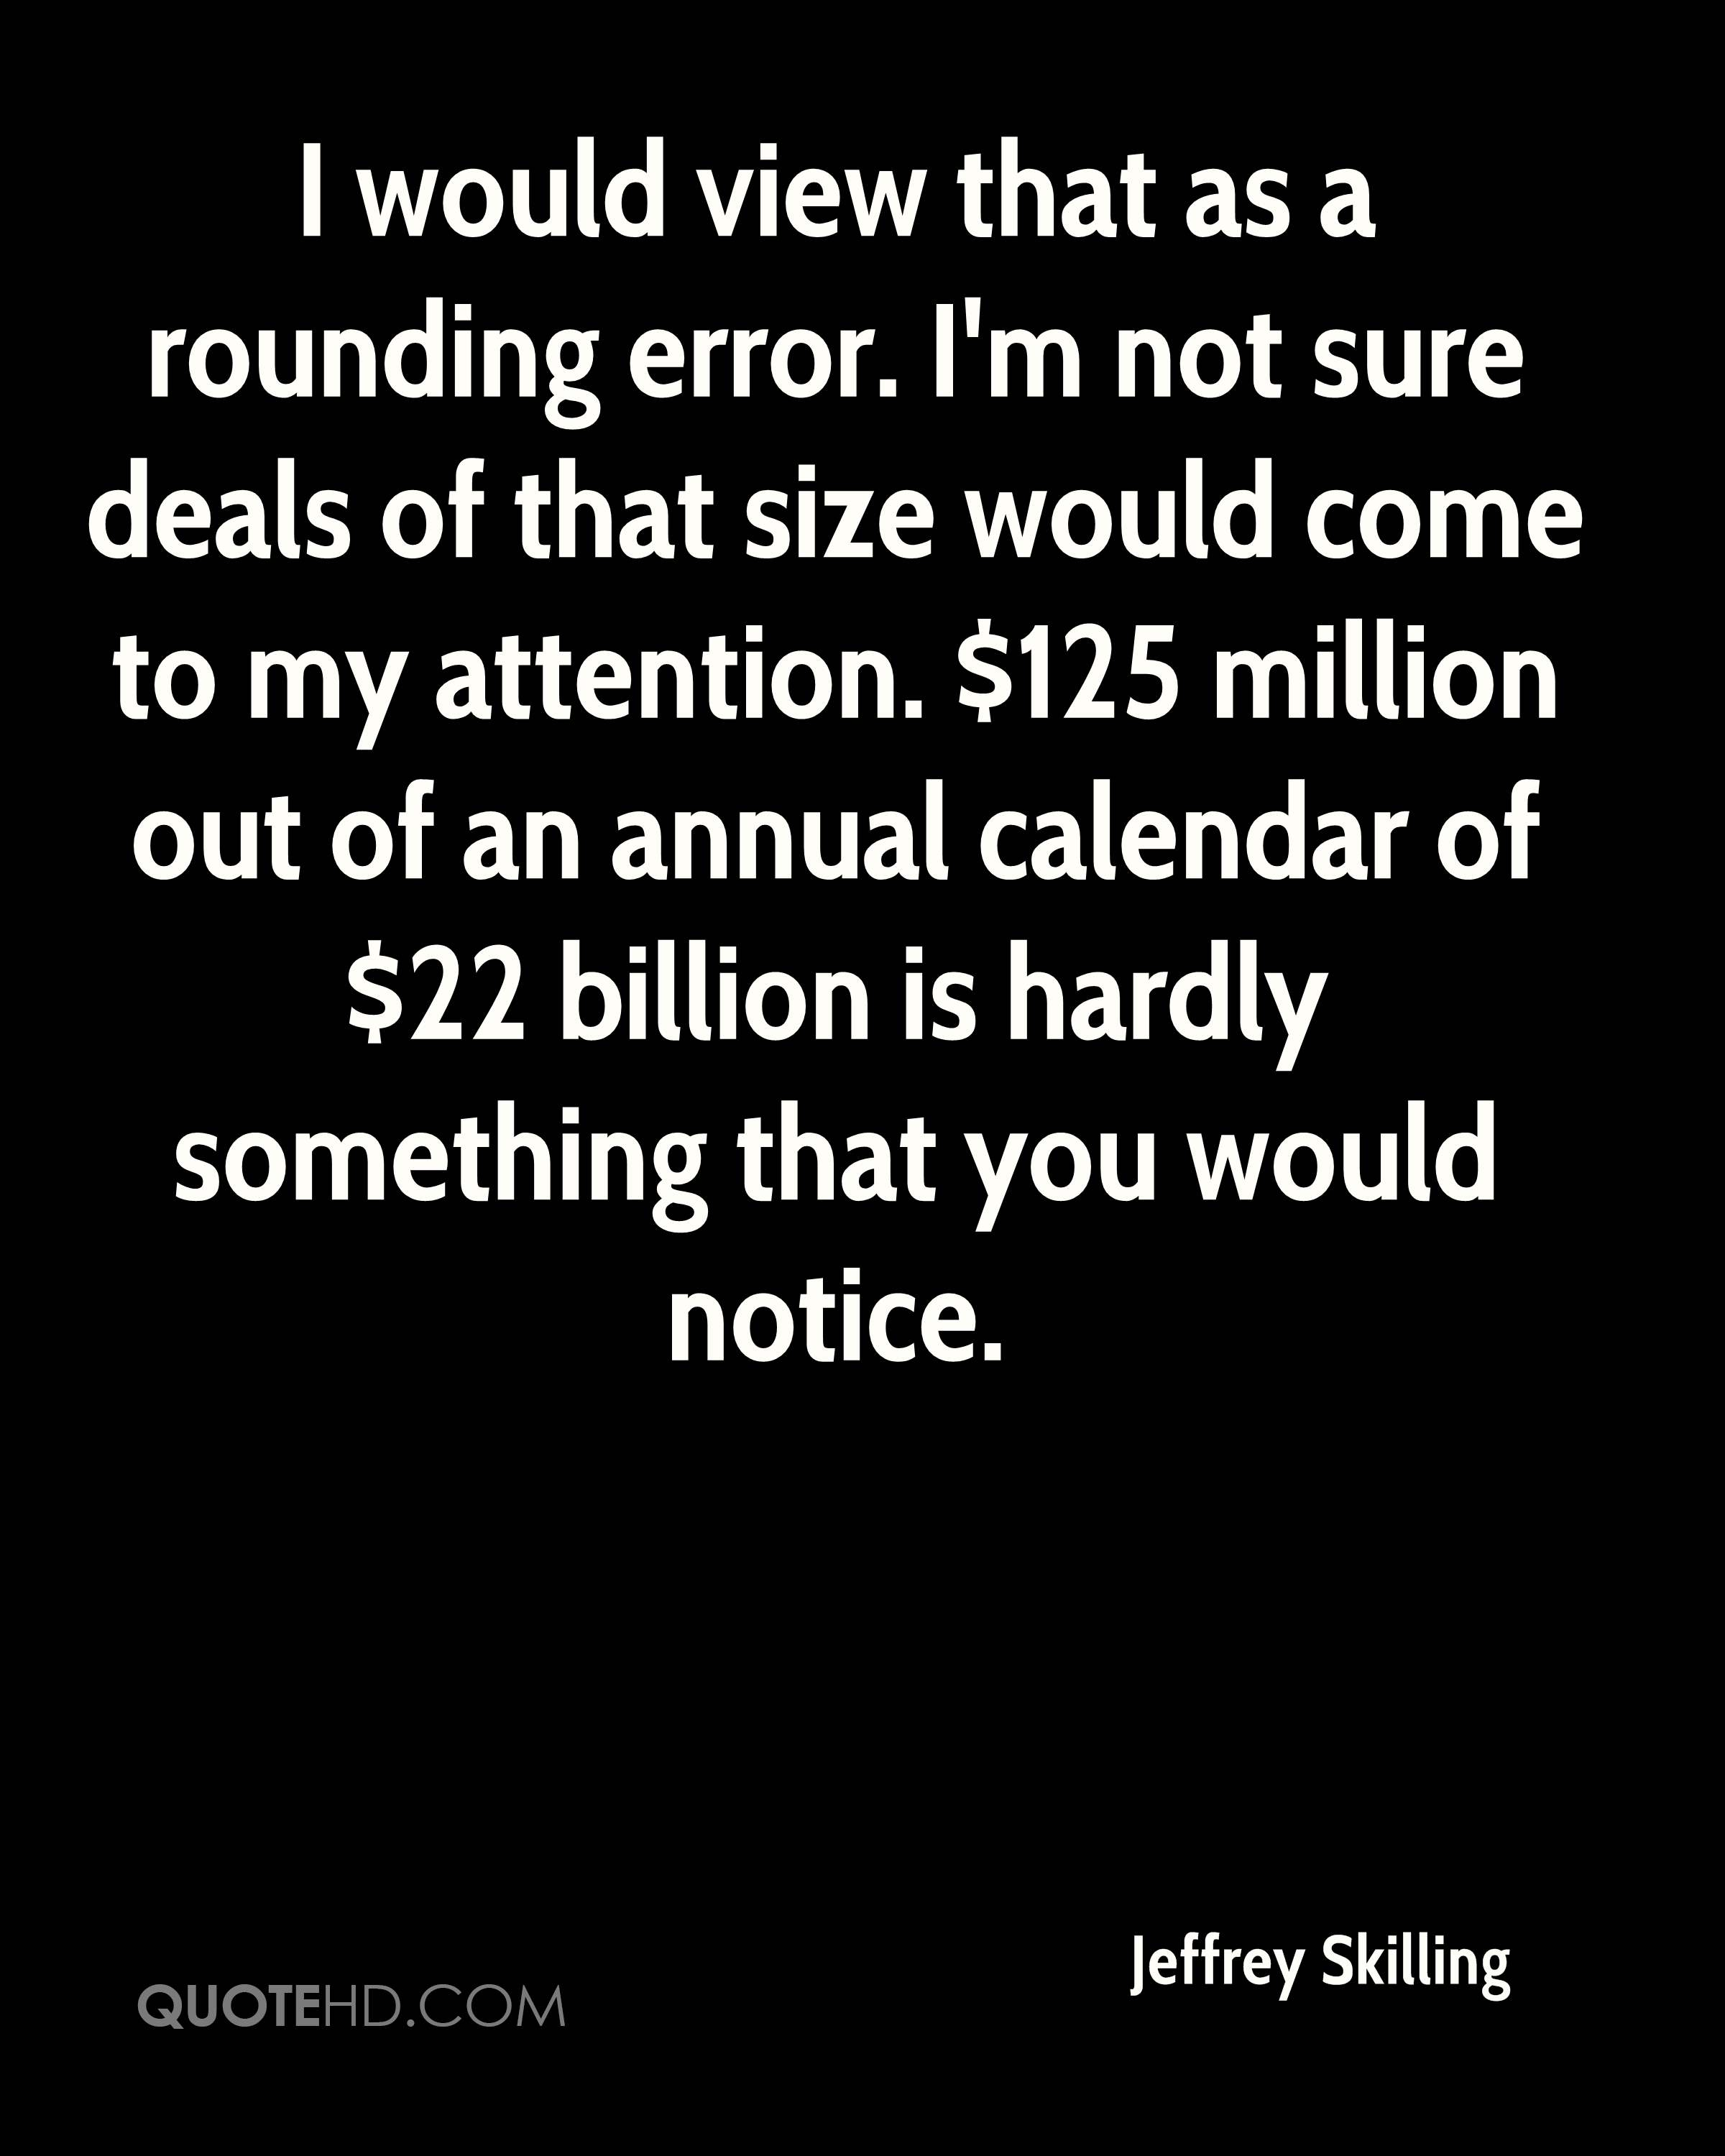 I would view that as a rounding error. I'm not sure deals of that size would come to my attention. $125 million out of an annual calendar of $22 billion is hardly something that you would notice.